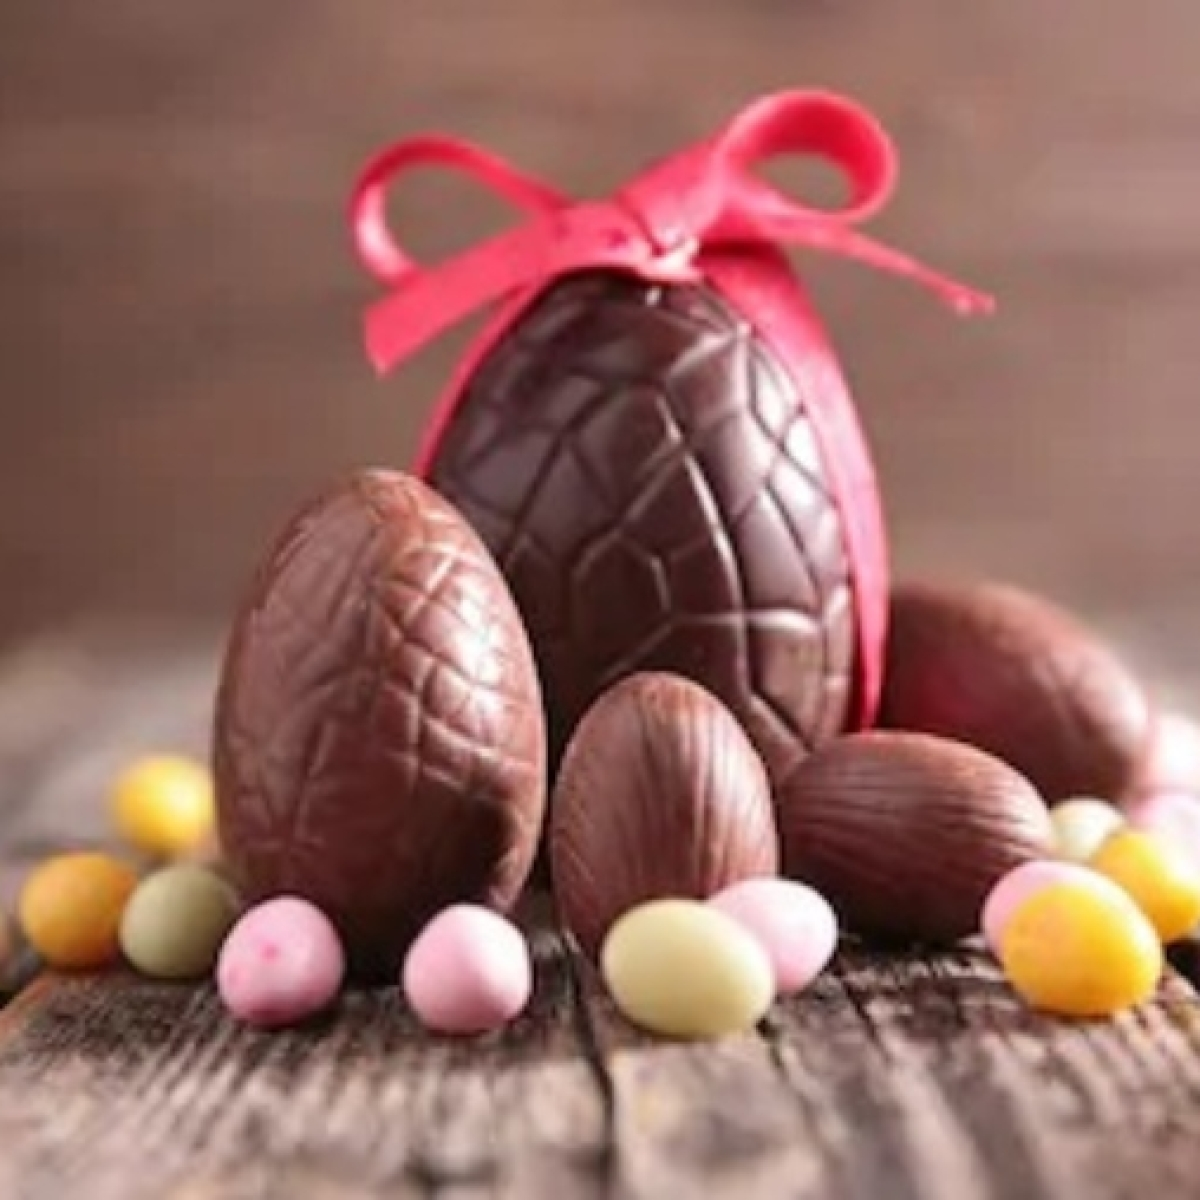 Easter 2020: Easy recipes for chocolate, marzipan and jello Easter Eggs to try at home